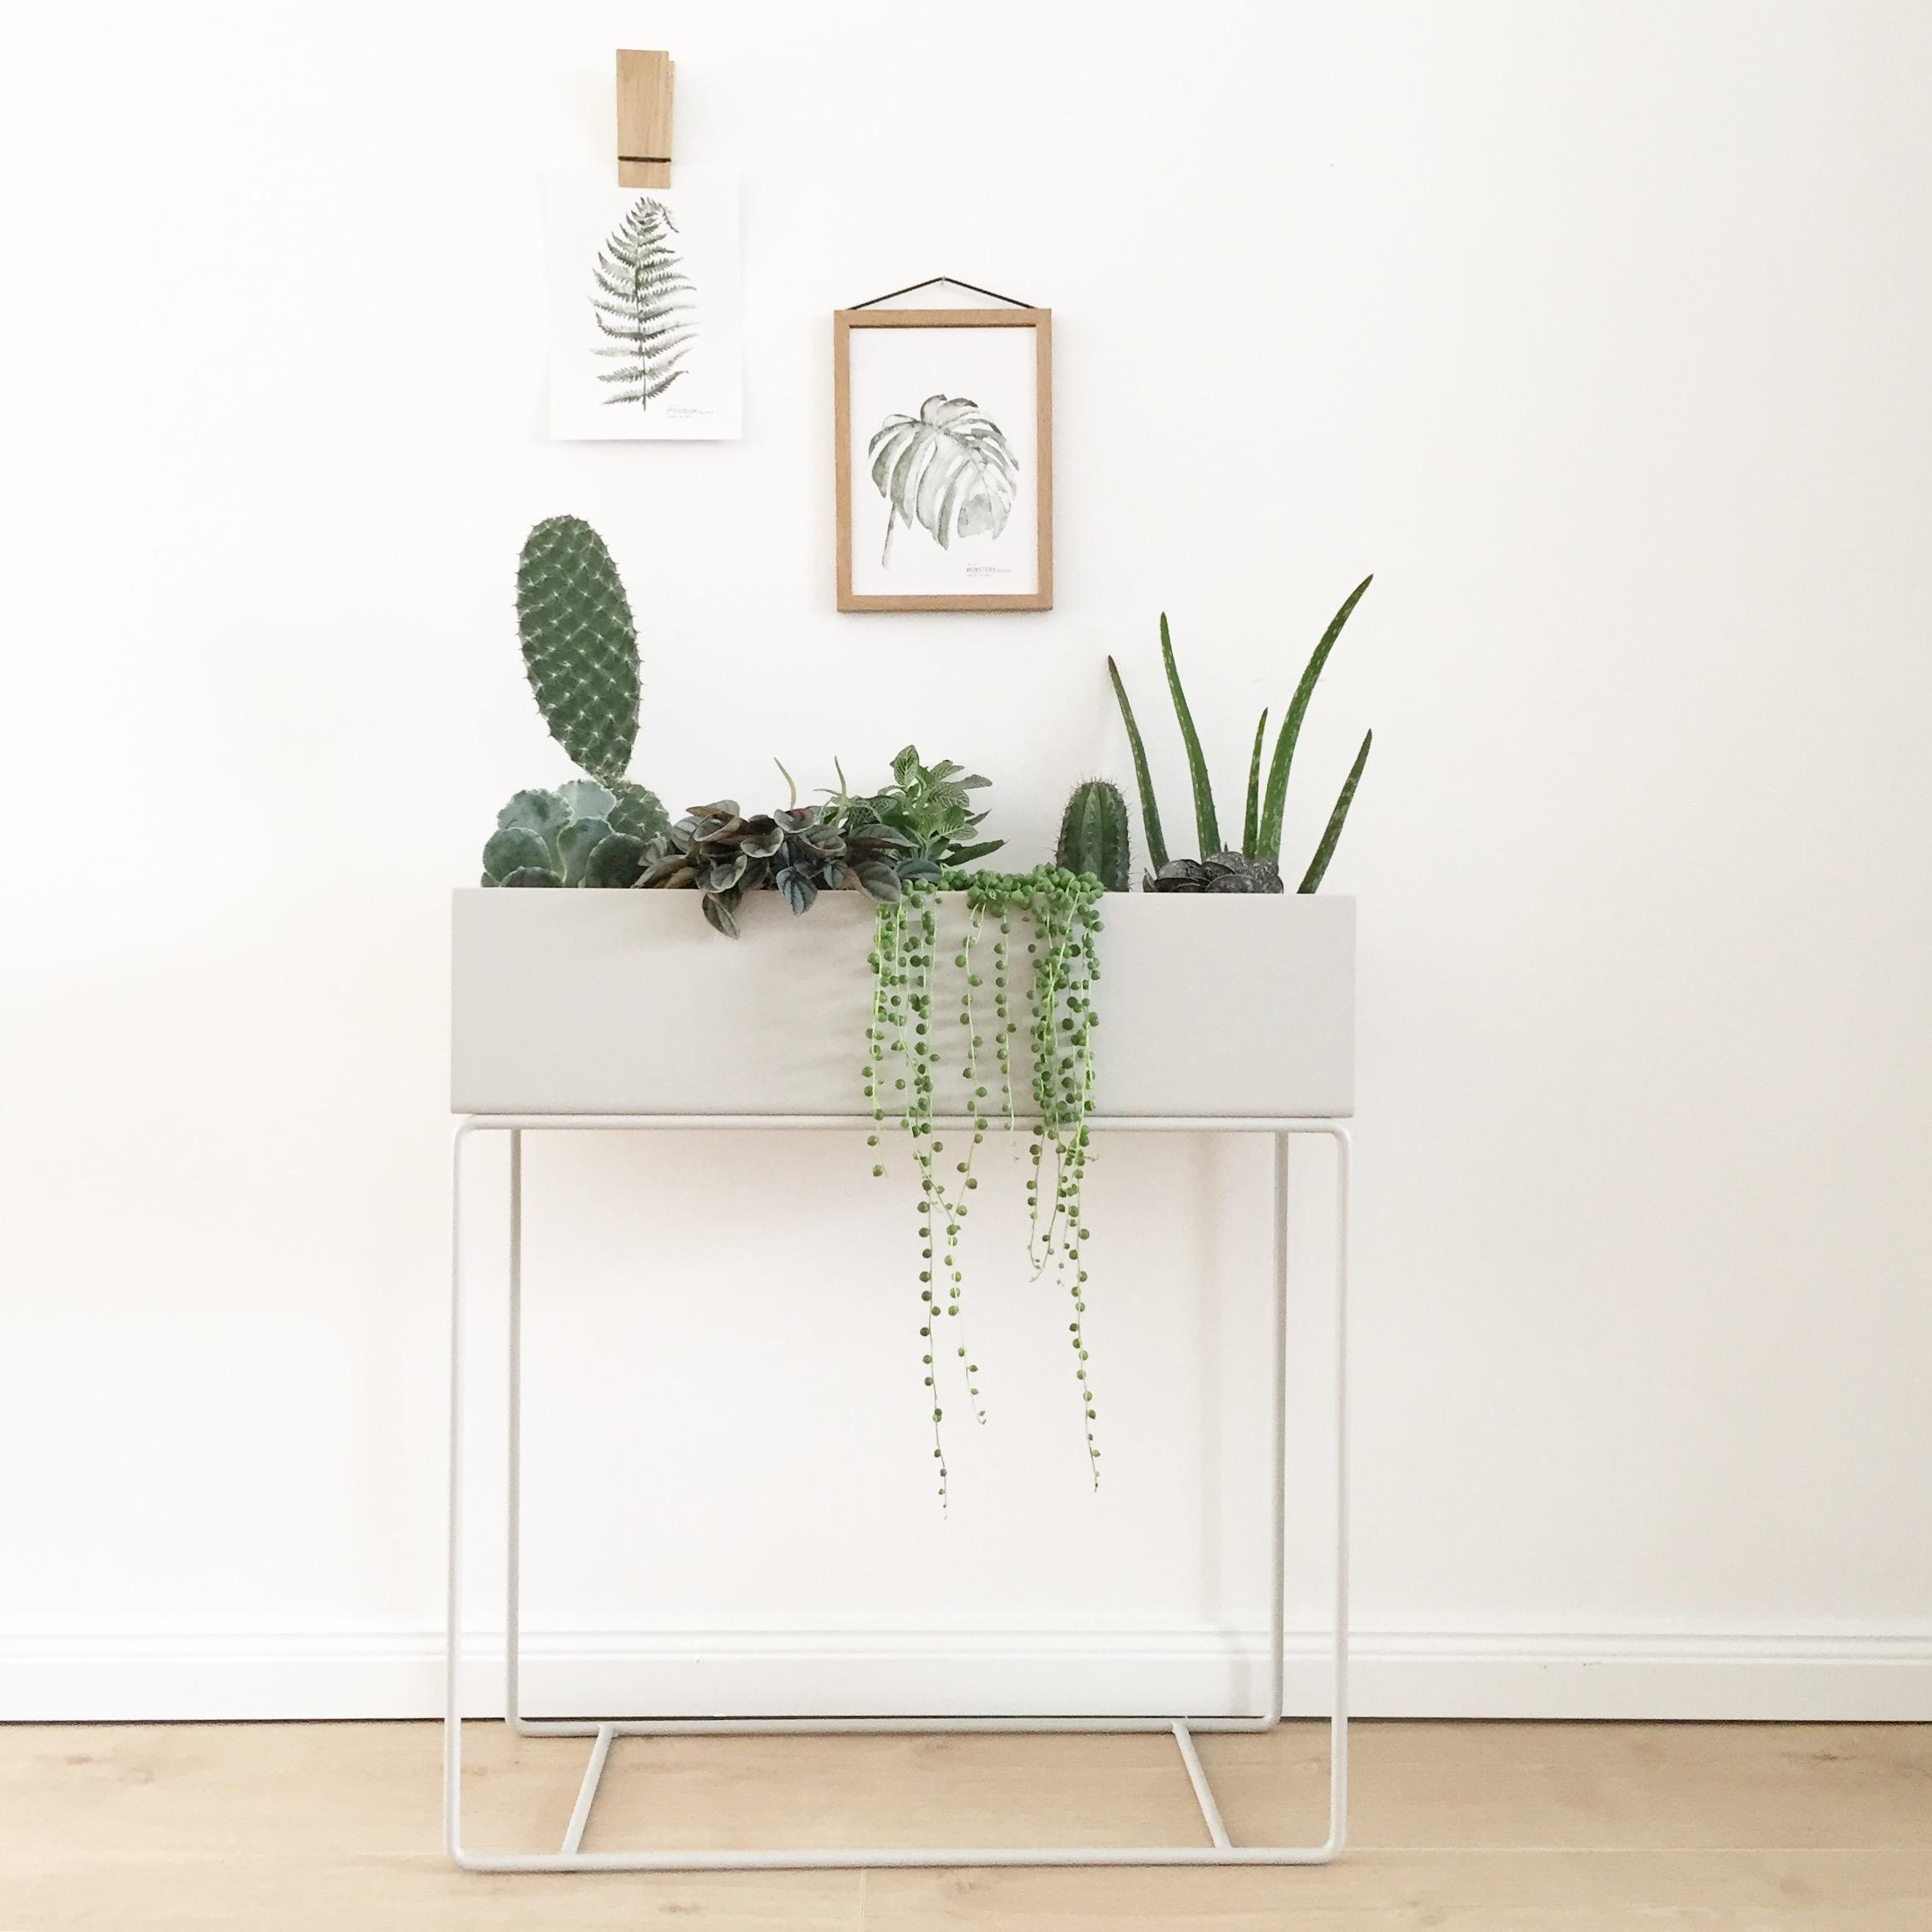 Plantgang  plantgang planzbox fermliving urbanjungle wohneningruen scandi  2561a737 bb8f 4861 8396 21e9f9fee2ed